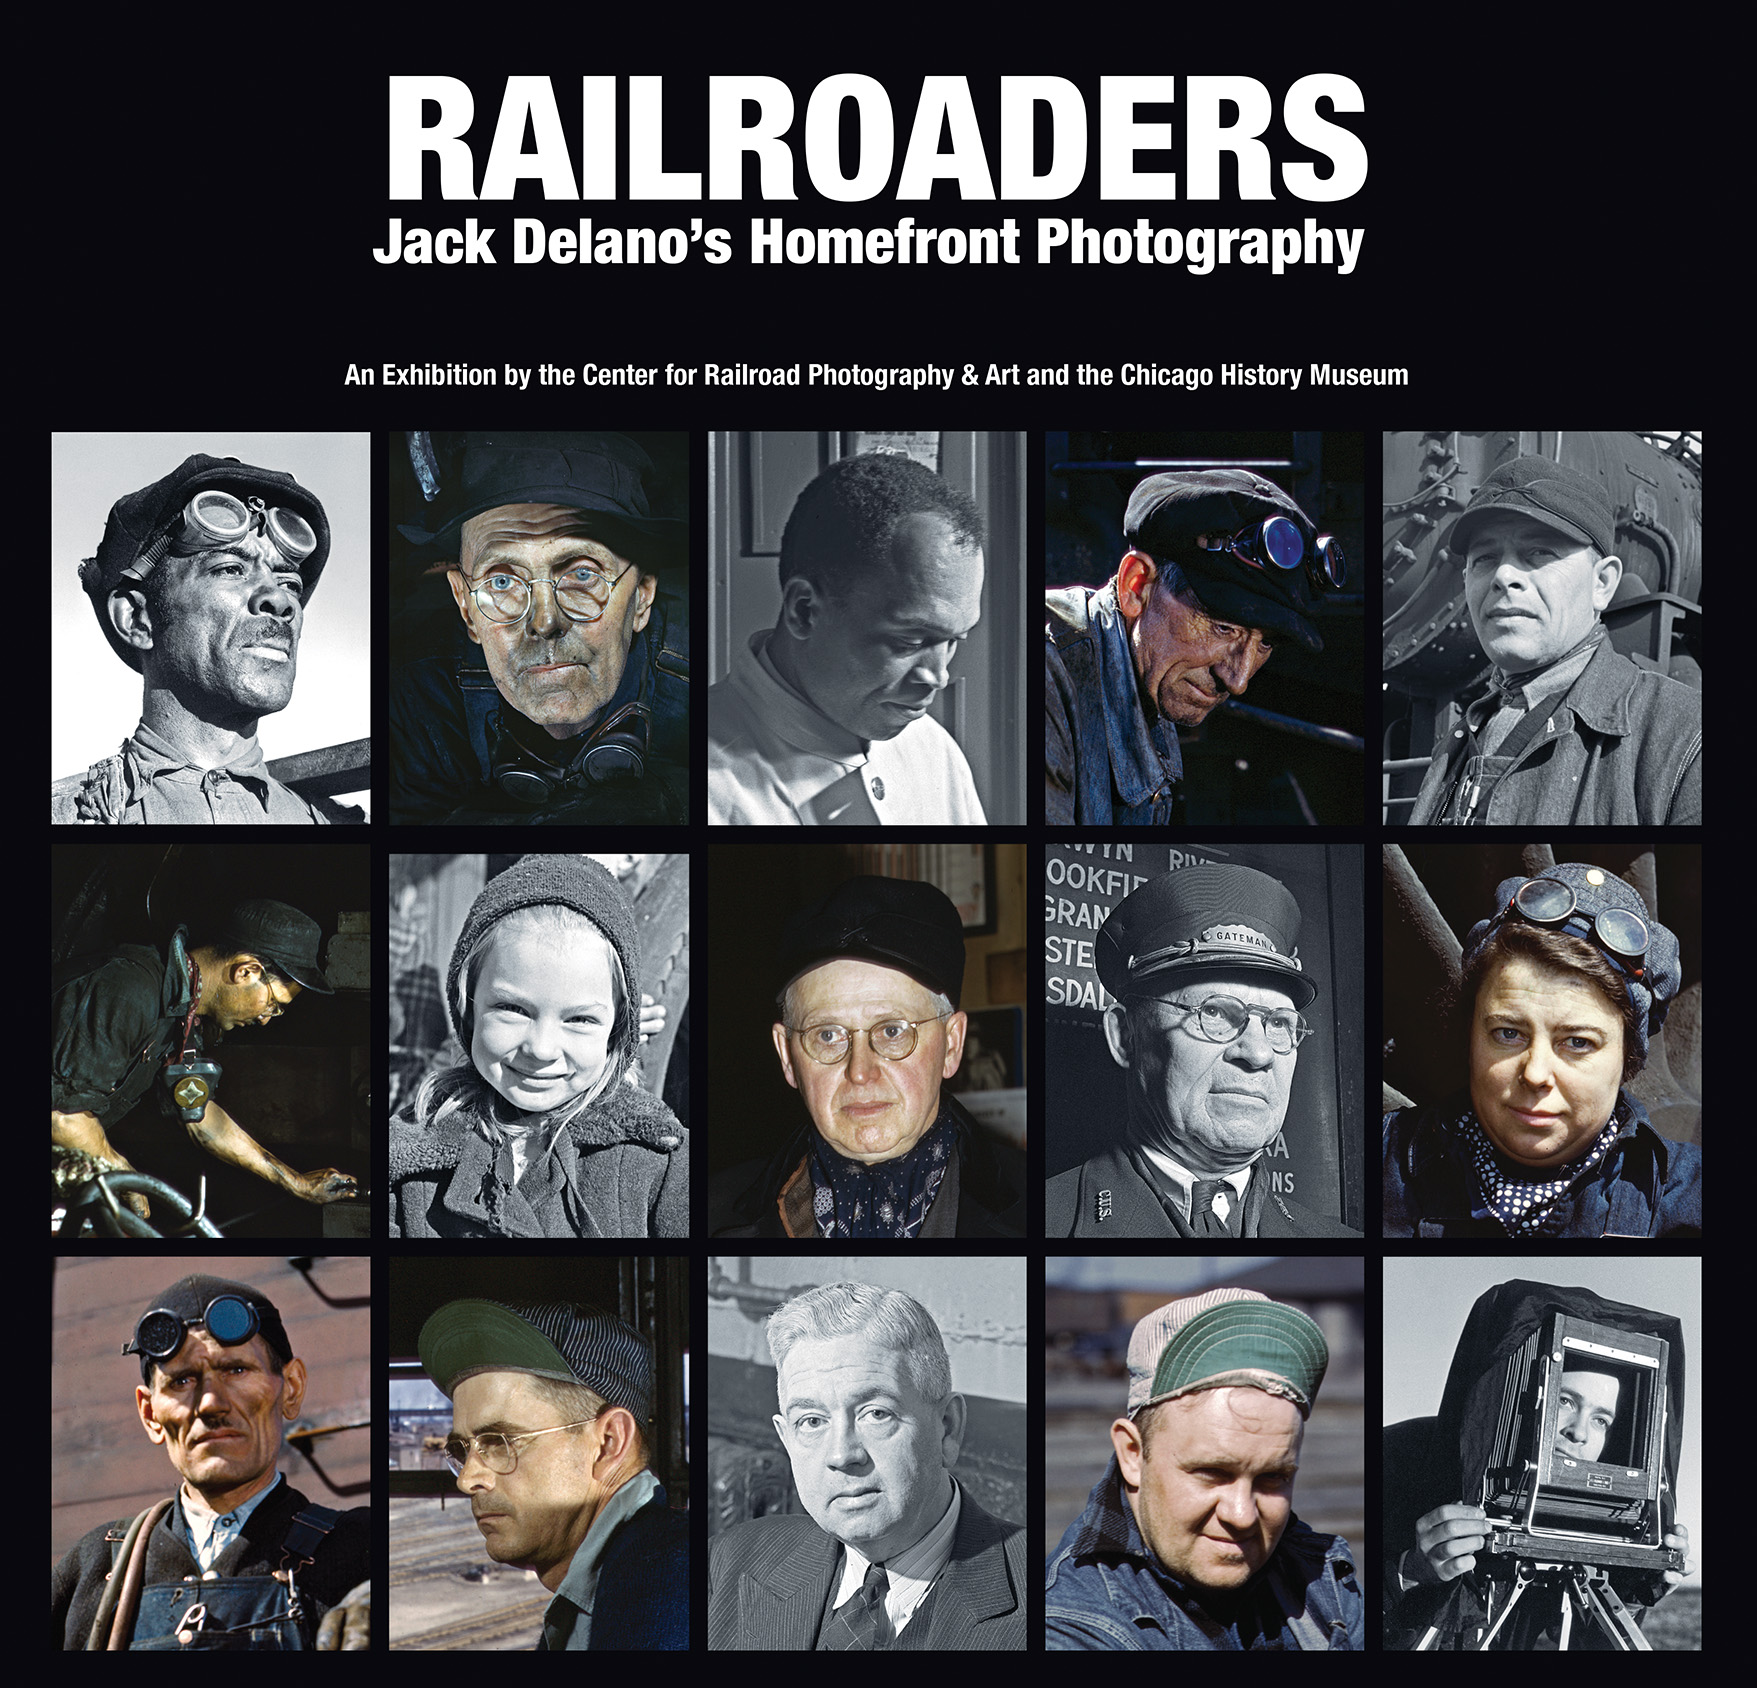 Exhibition catalog for Railroaders: Jack Delano's Homefront Photography